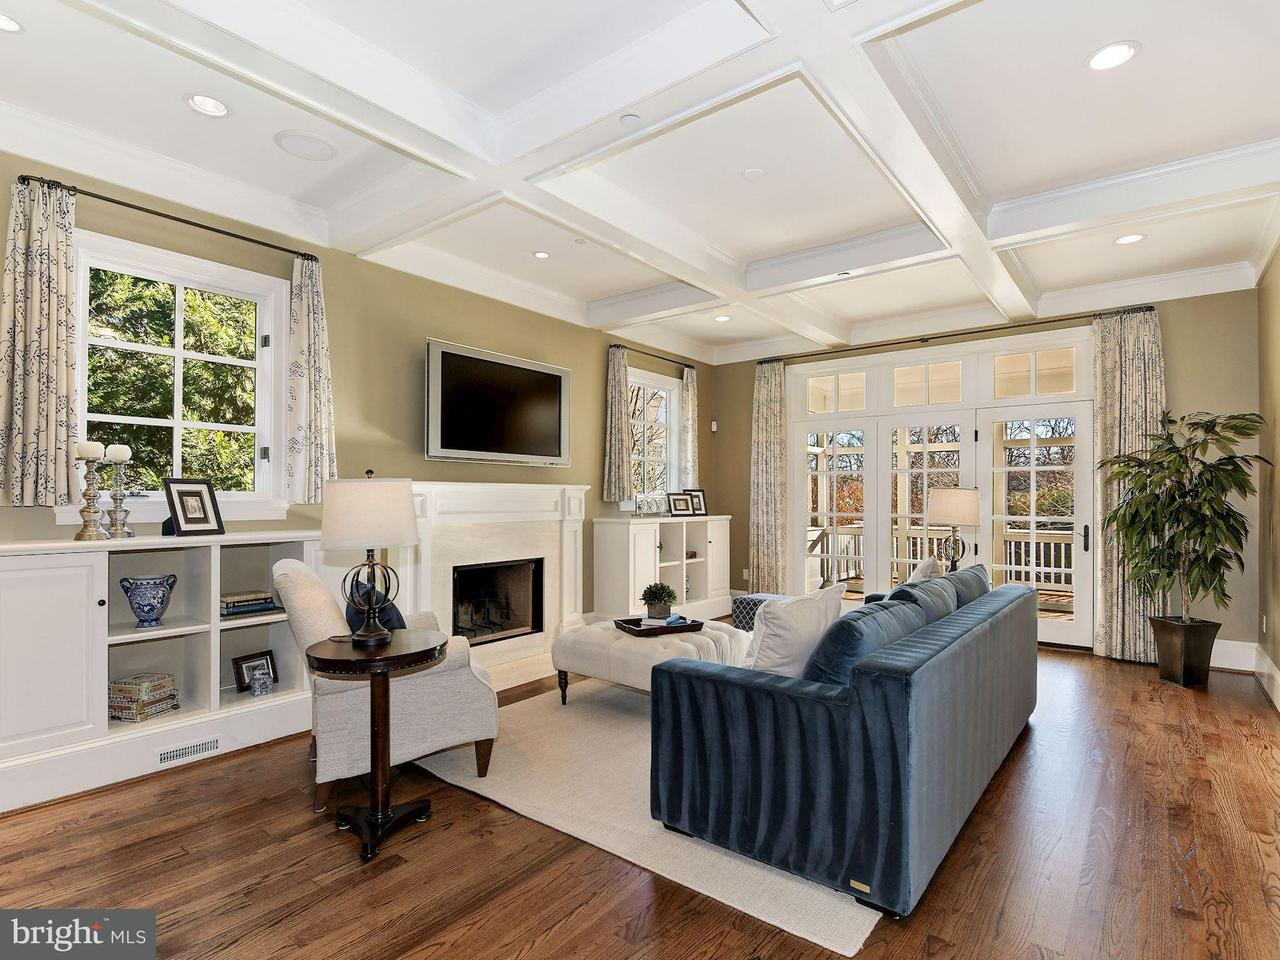 Additional photo for property listing at 2427 Chain Bridge Rd Nw 2427 Chain Bridge Rd Nw Washington, District Of Columbia 20016 United States